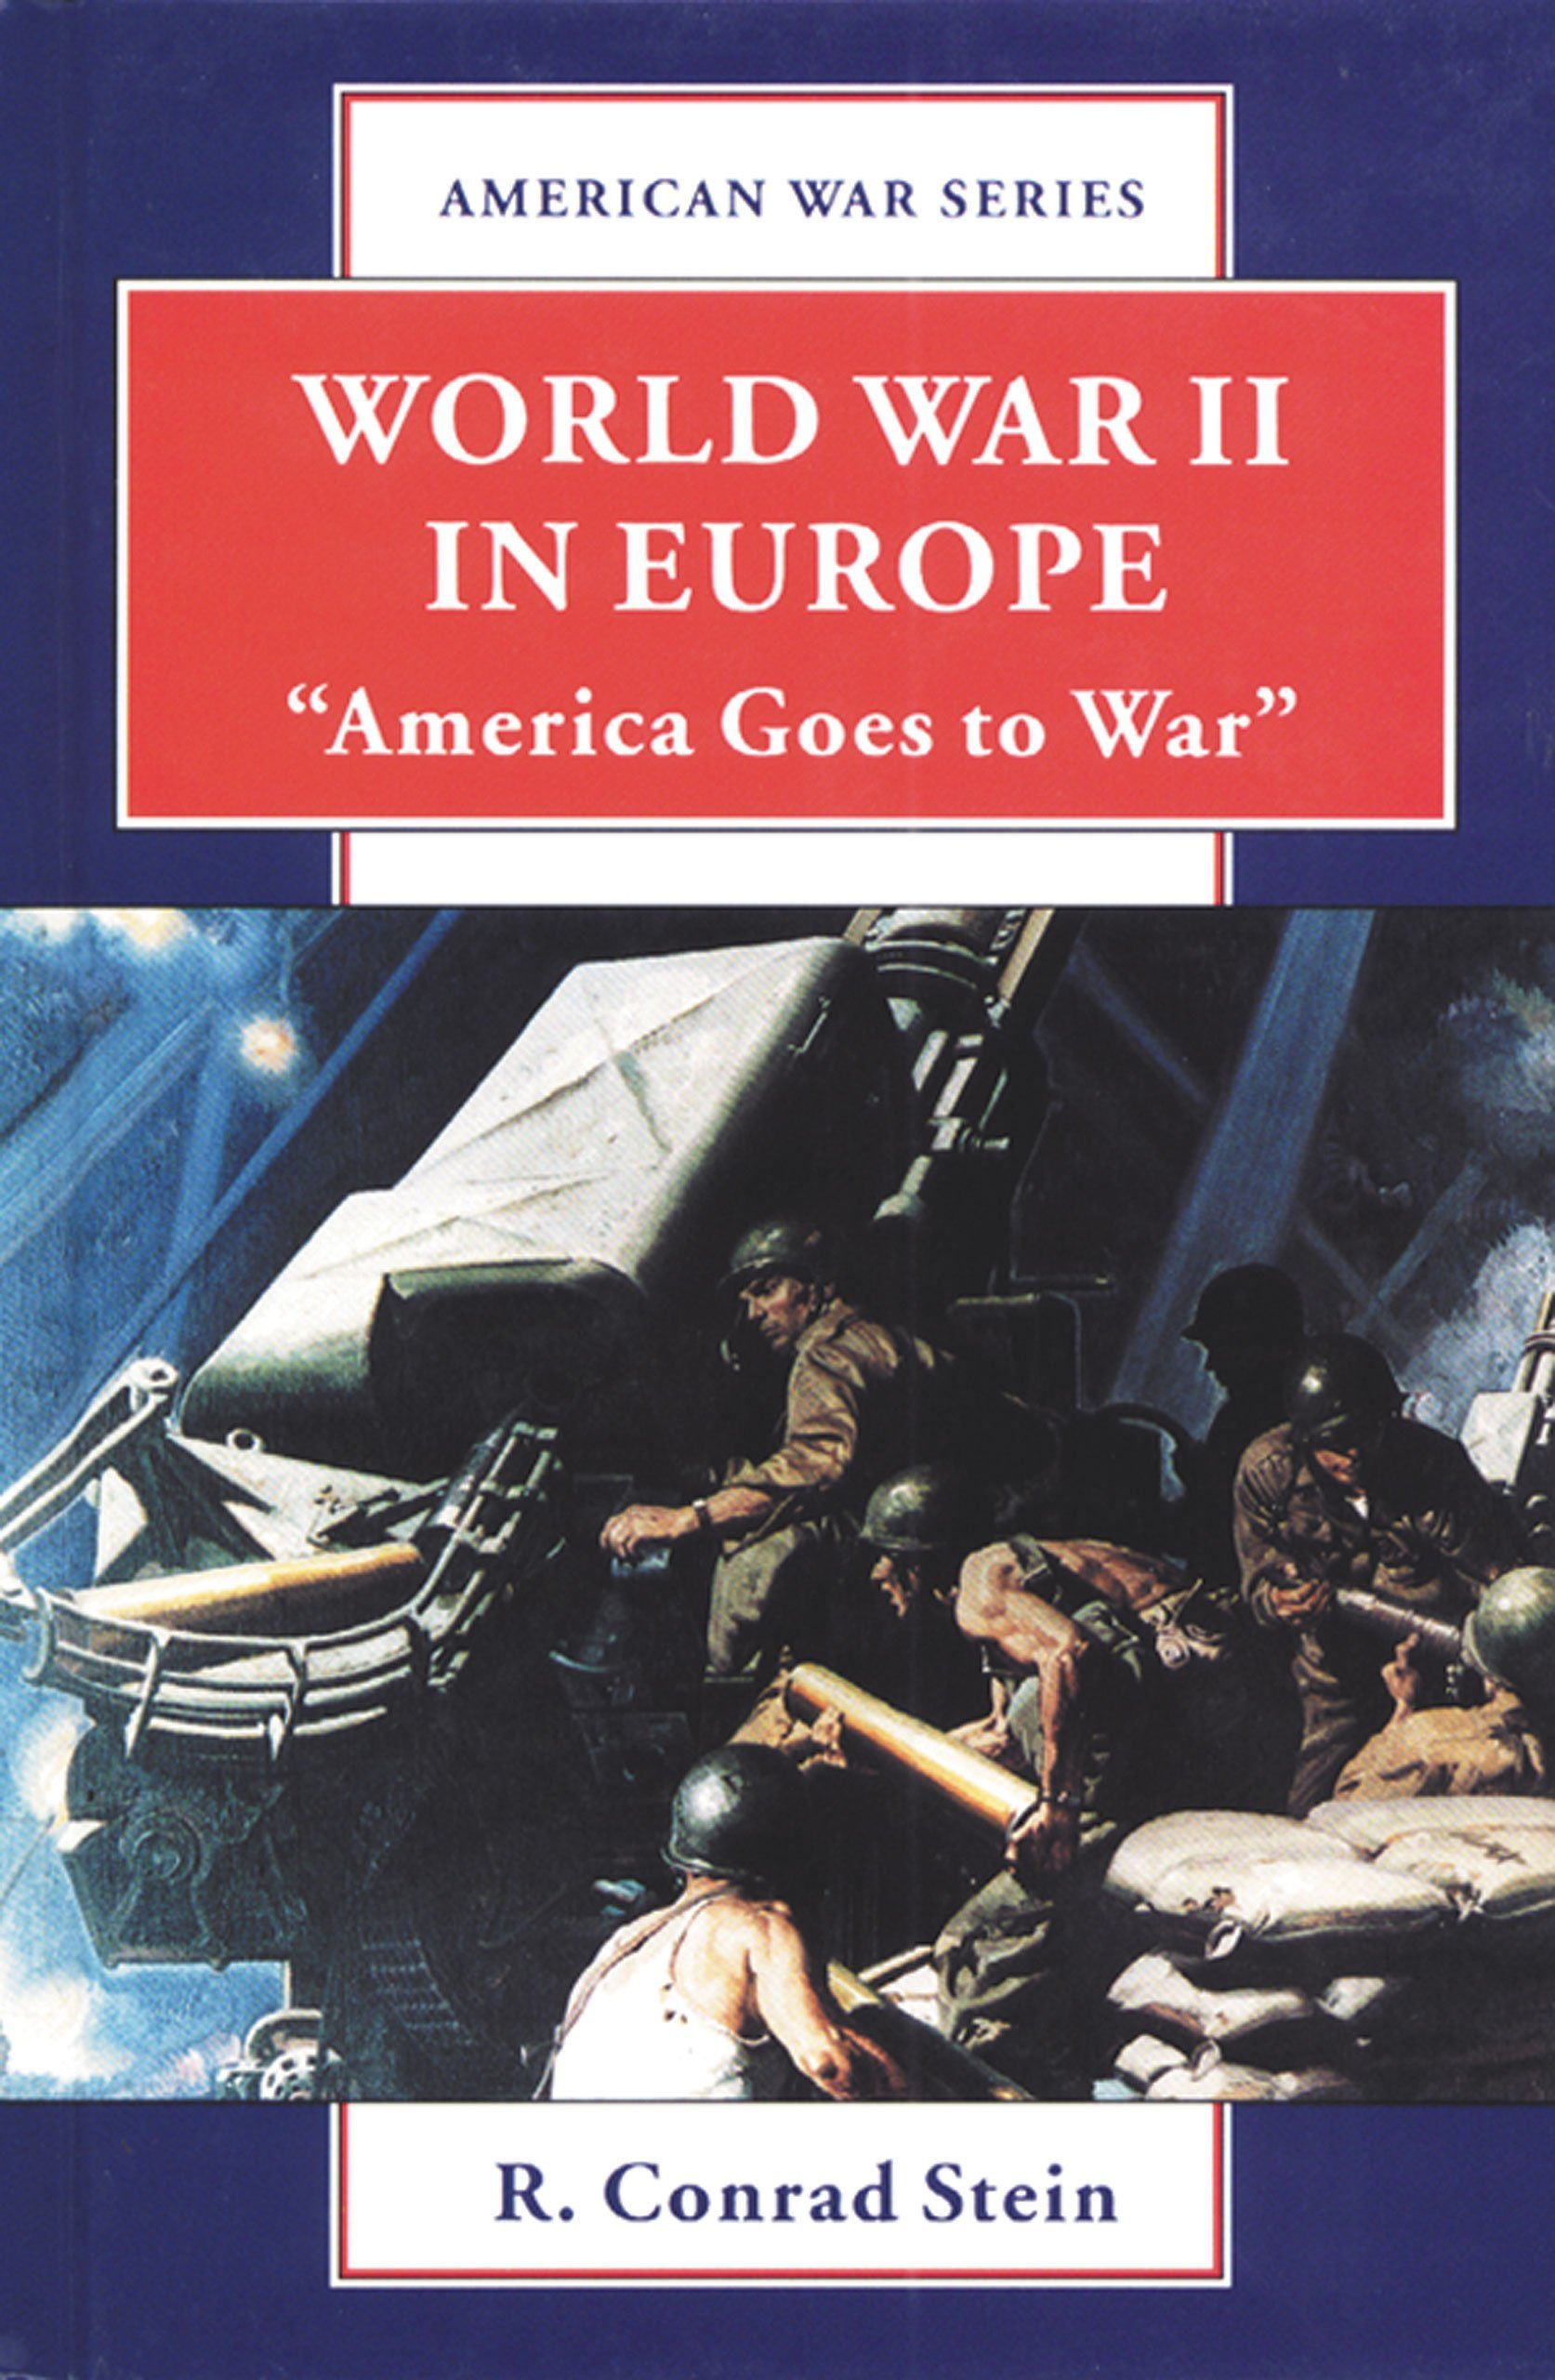 When Should America Go To War?